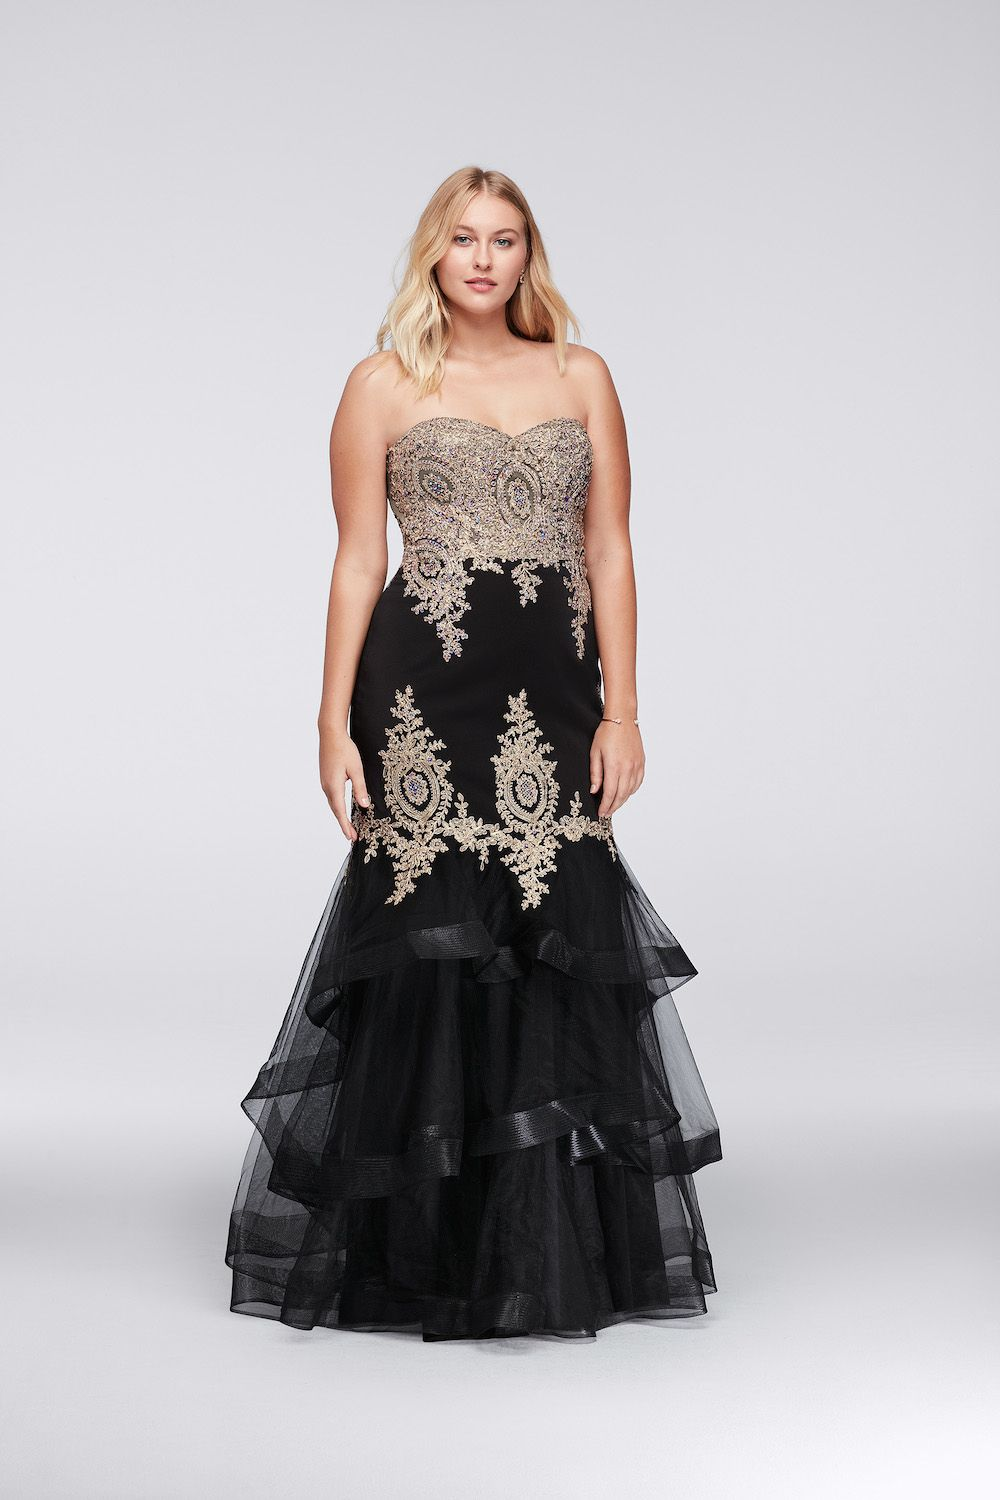 30 Best Black Prom Dresses 2018 - Dark Formal Dresses for Prom